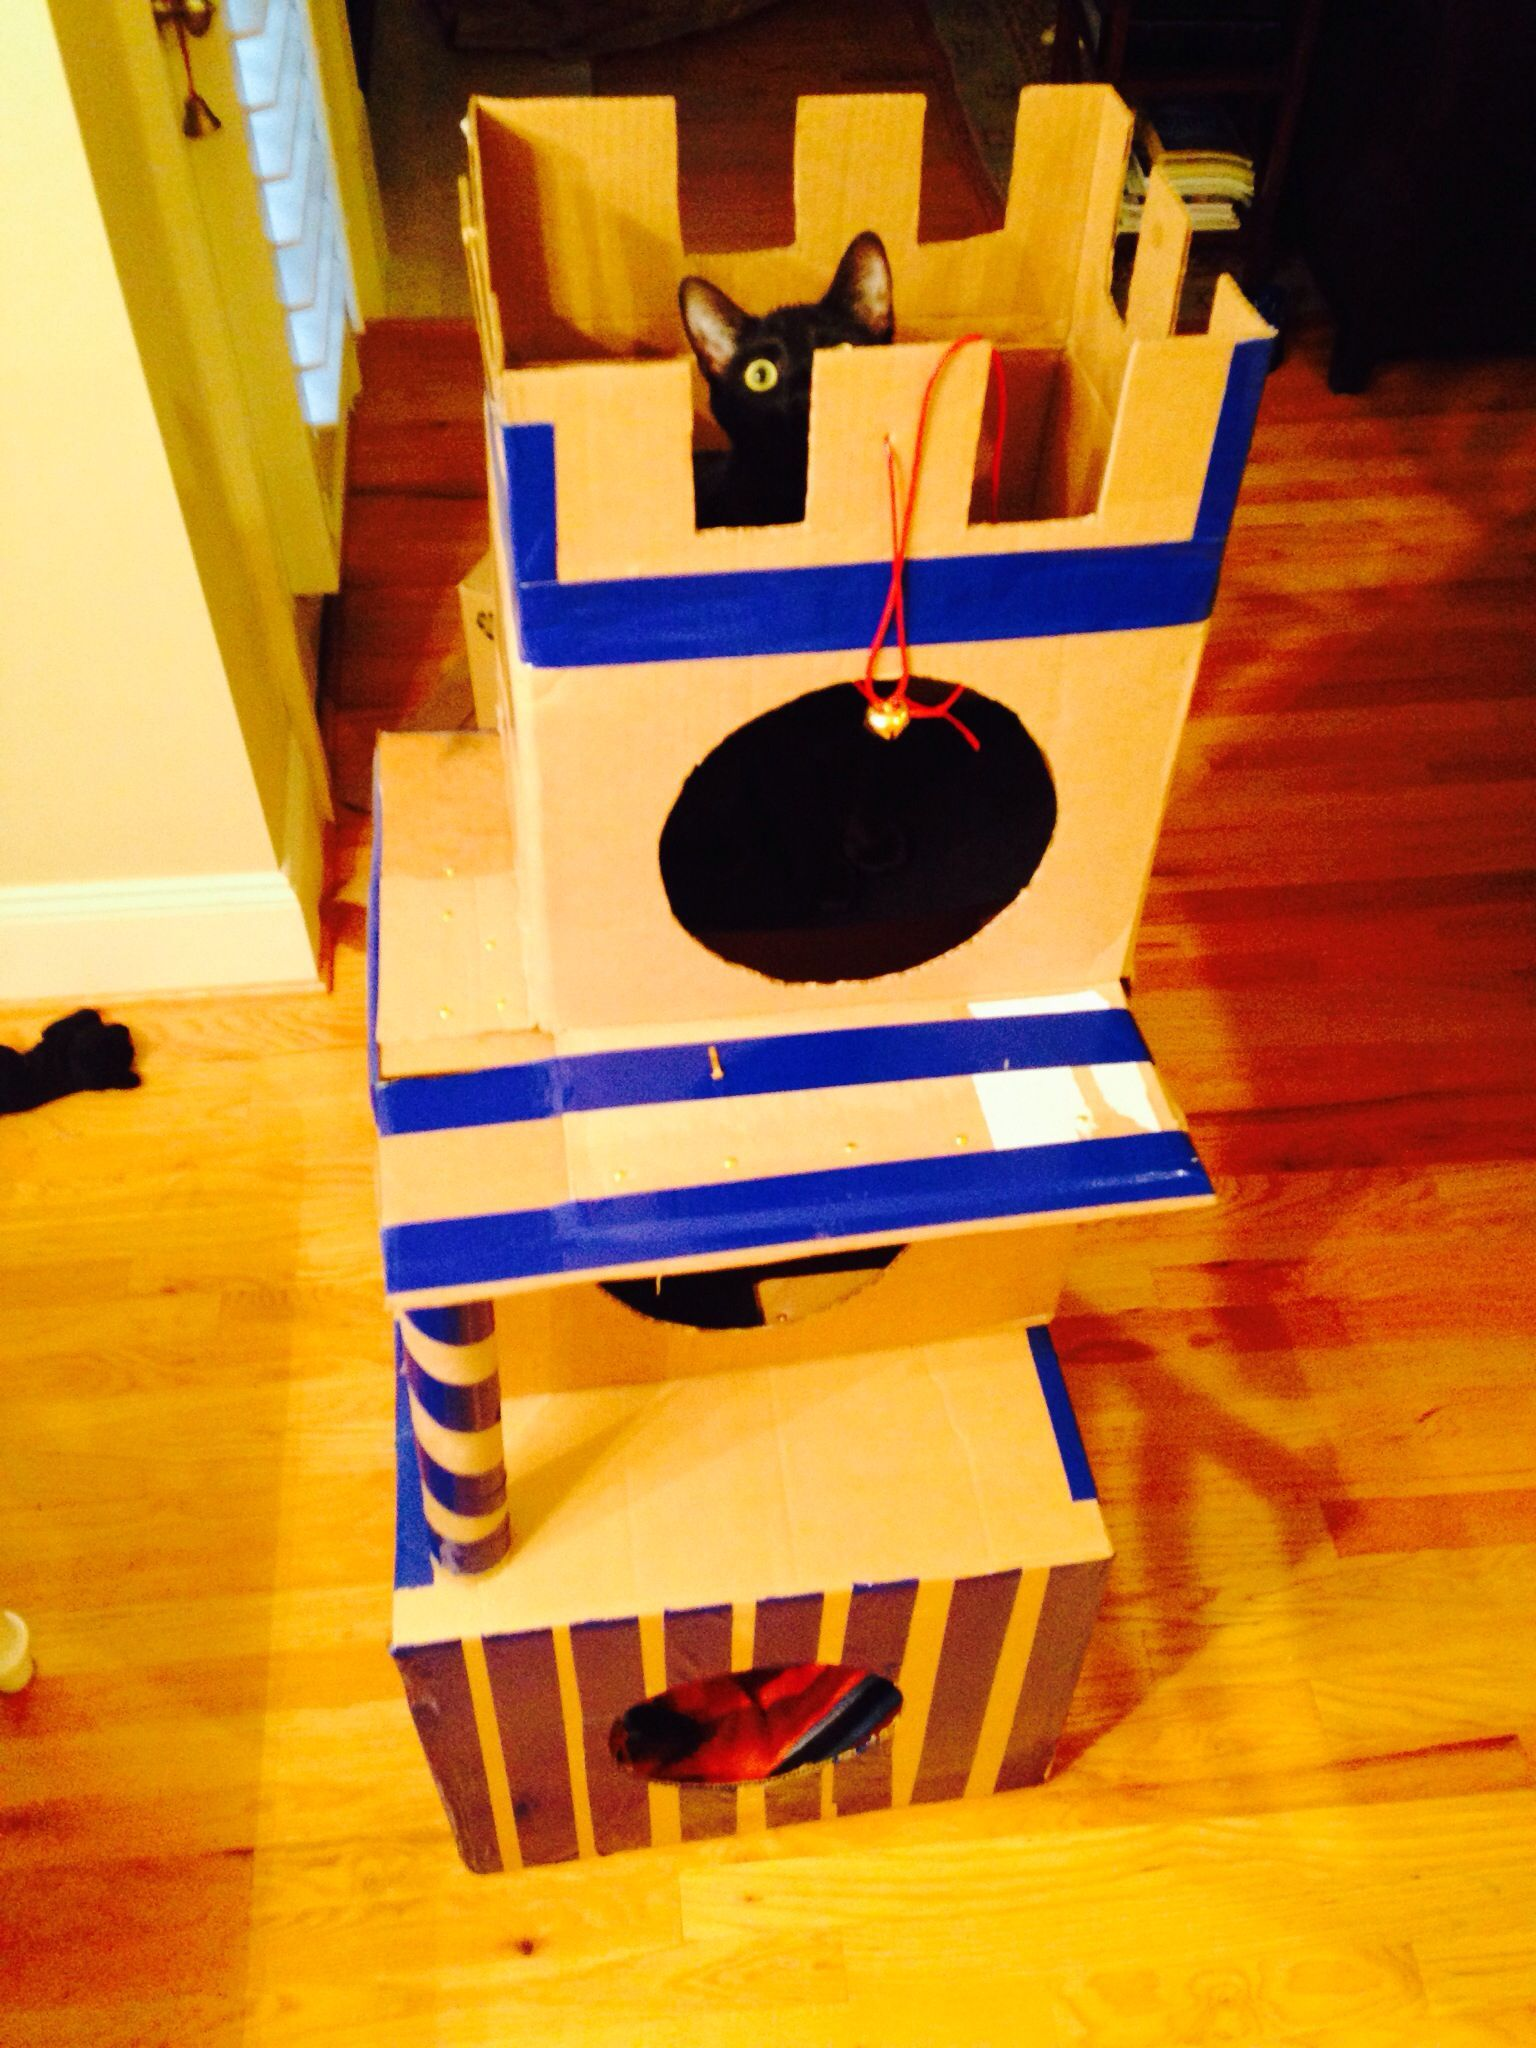 Cardboard cat castle made from cardboard boxes